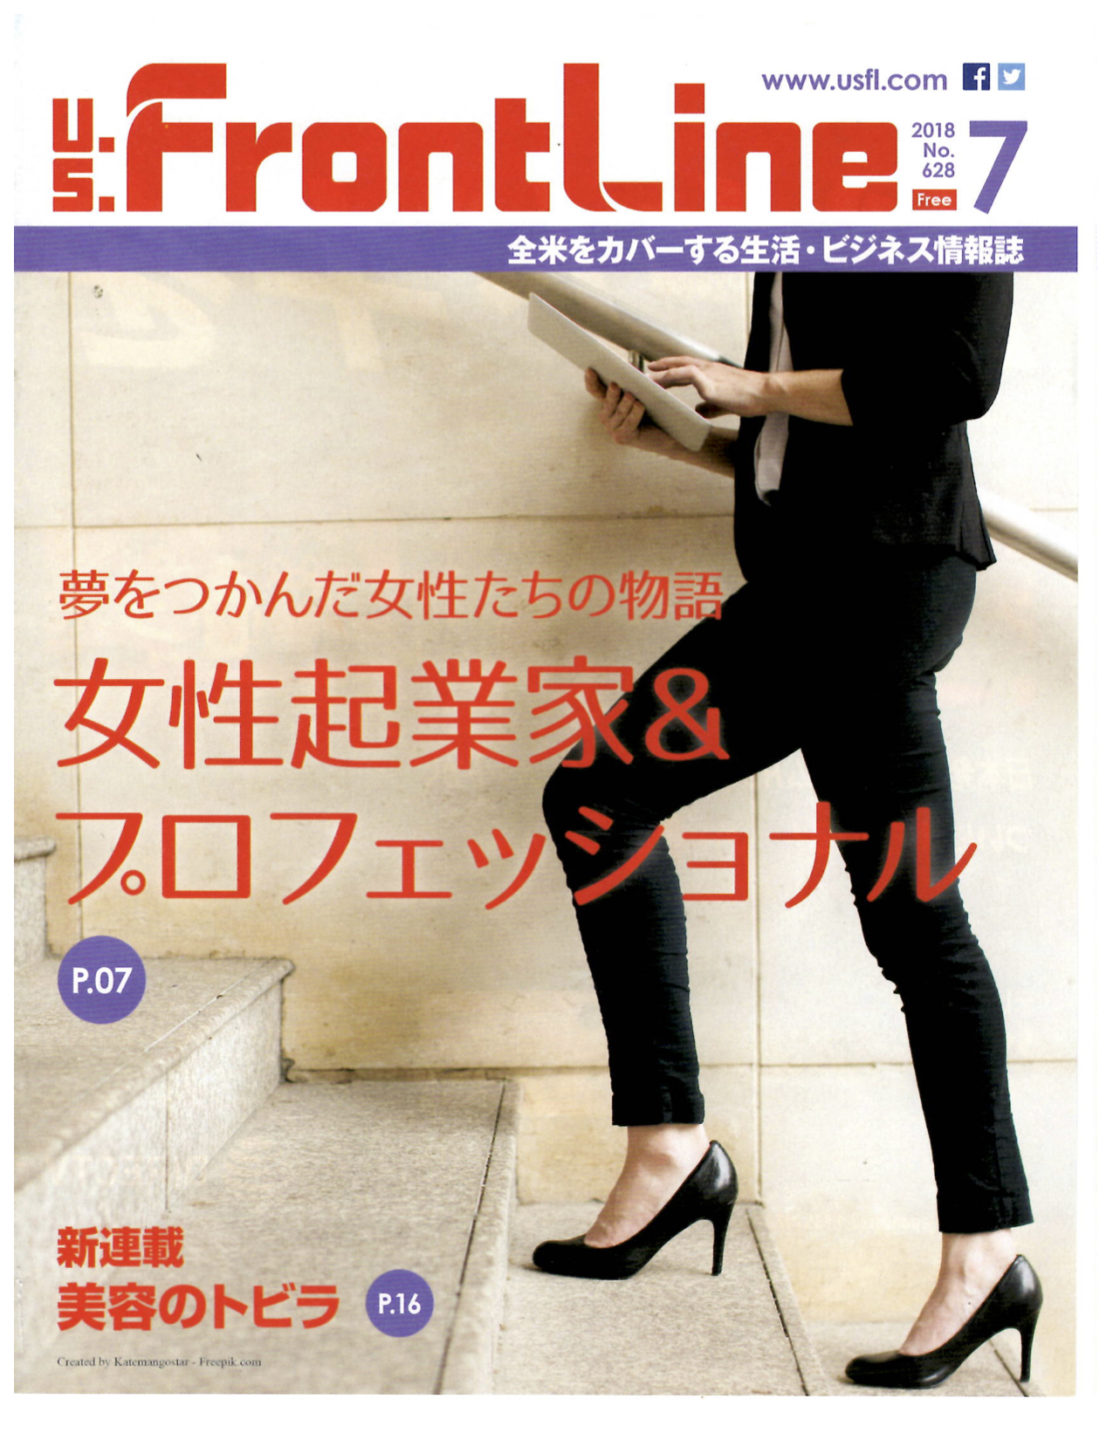 Studio_William_Hefner_press_cover_Frontline_June2018